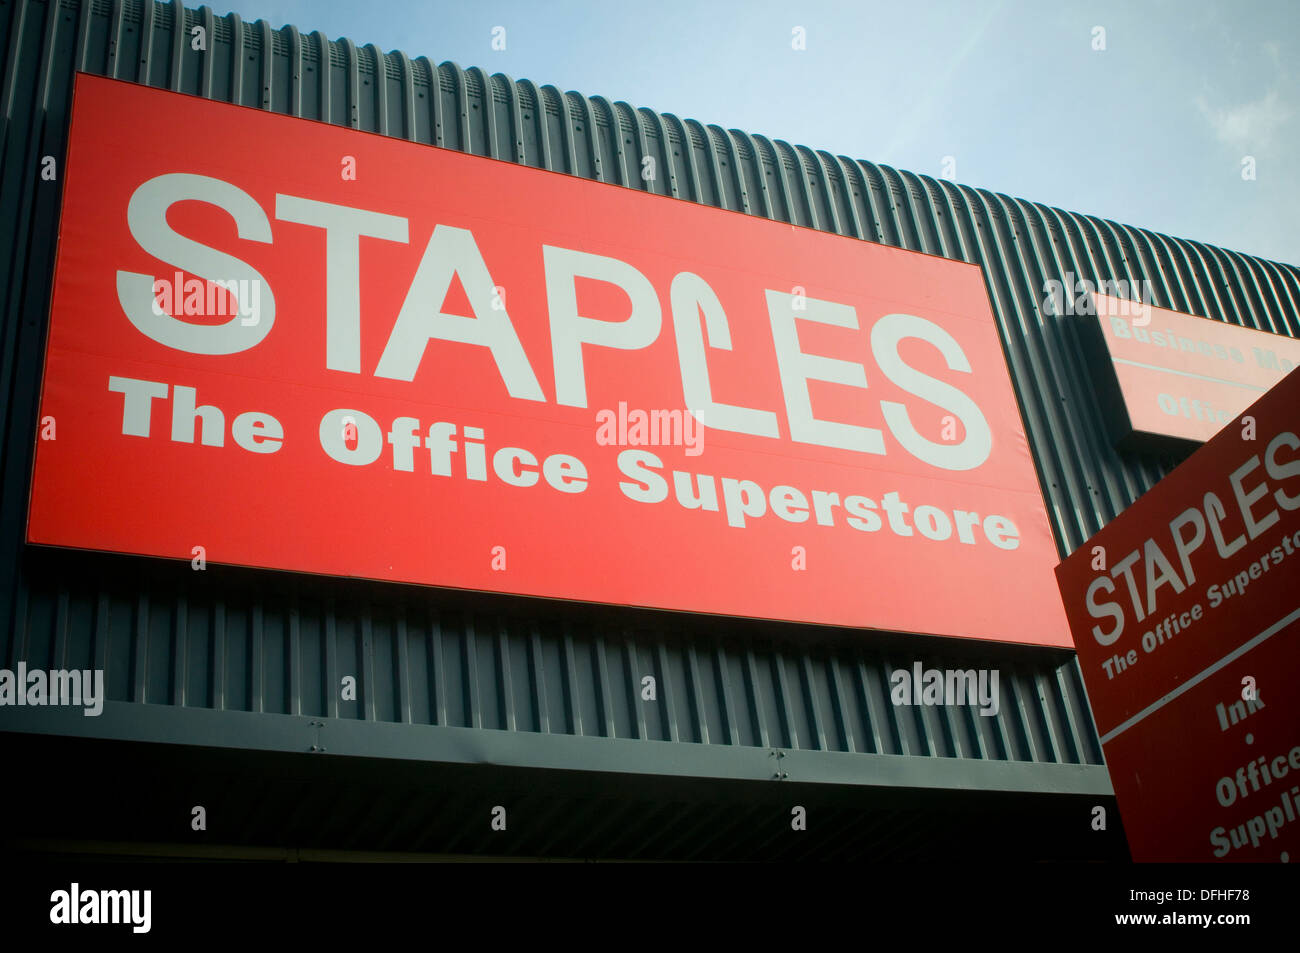 staples office suppliers superstore superstore out of town shop retailer stationary - Stock Image